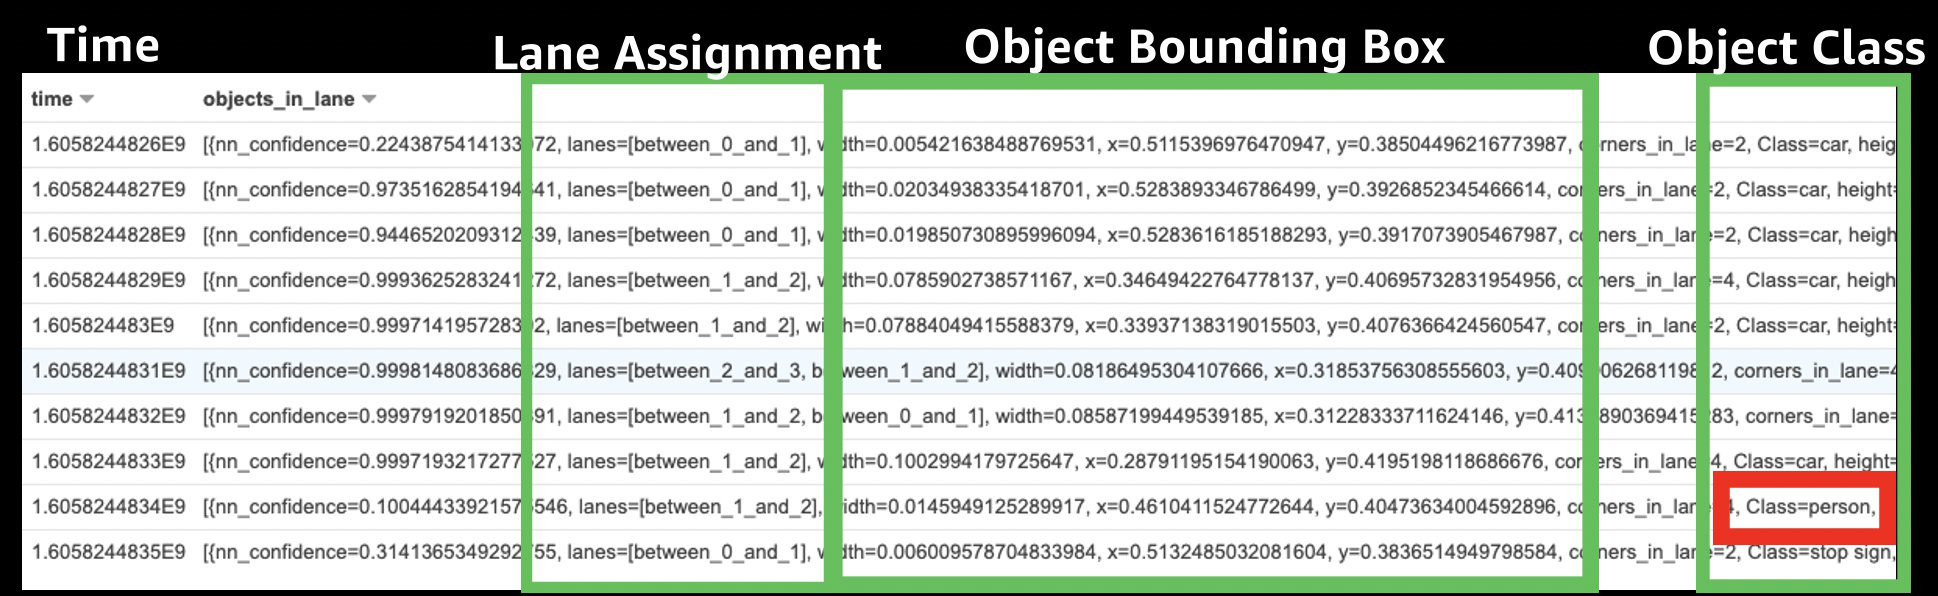 Synchronized topics enriched with object lane assignments